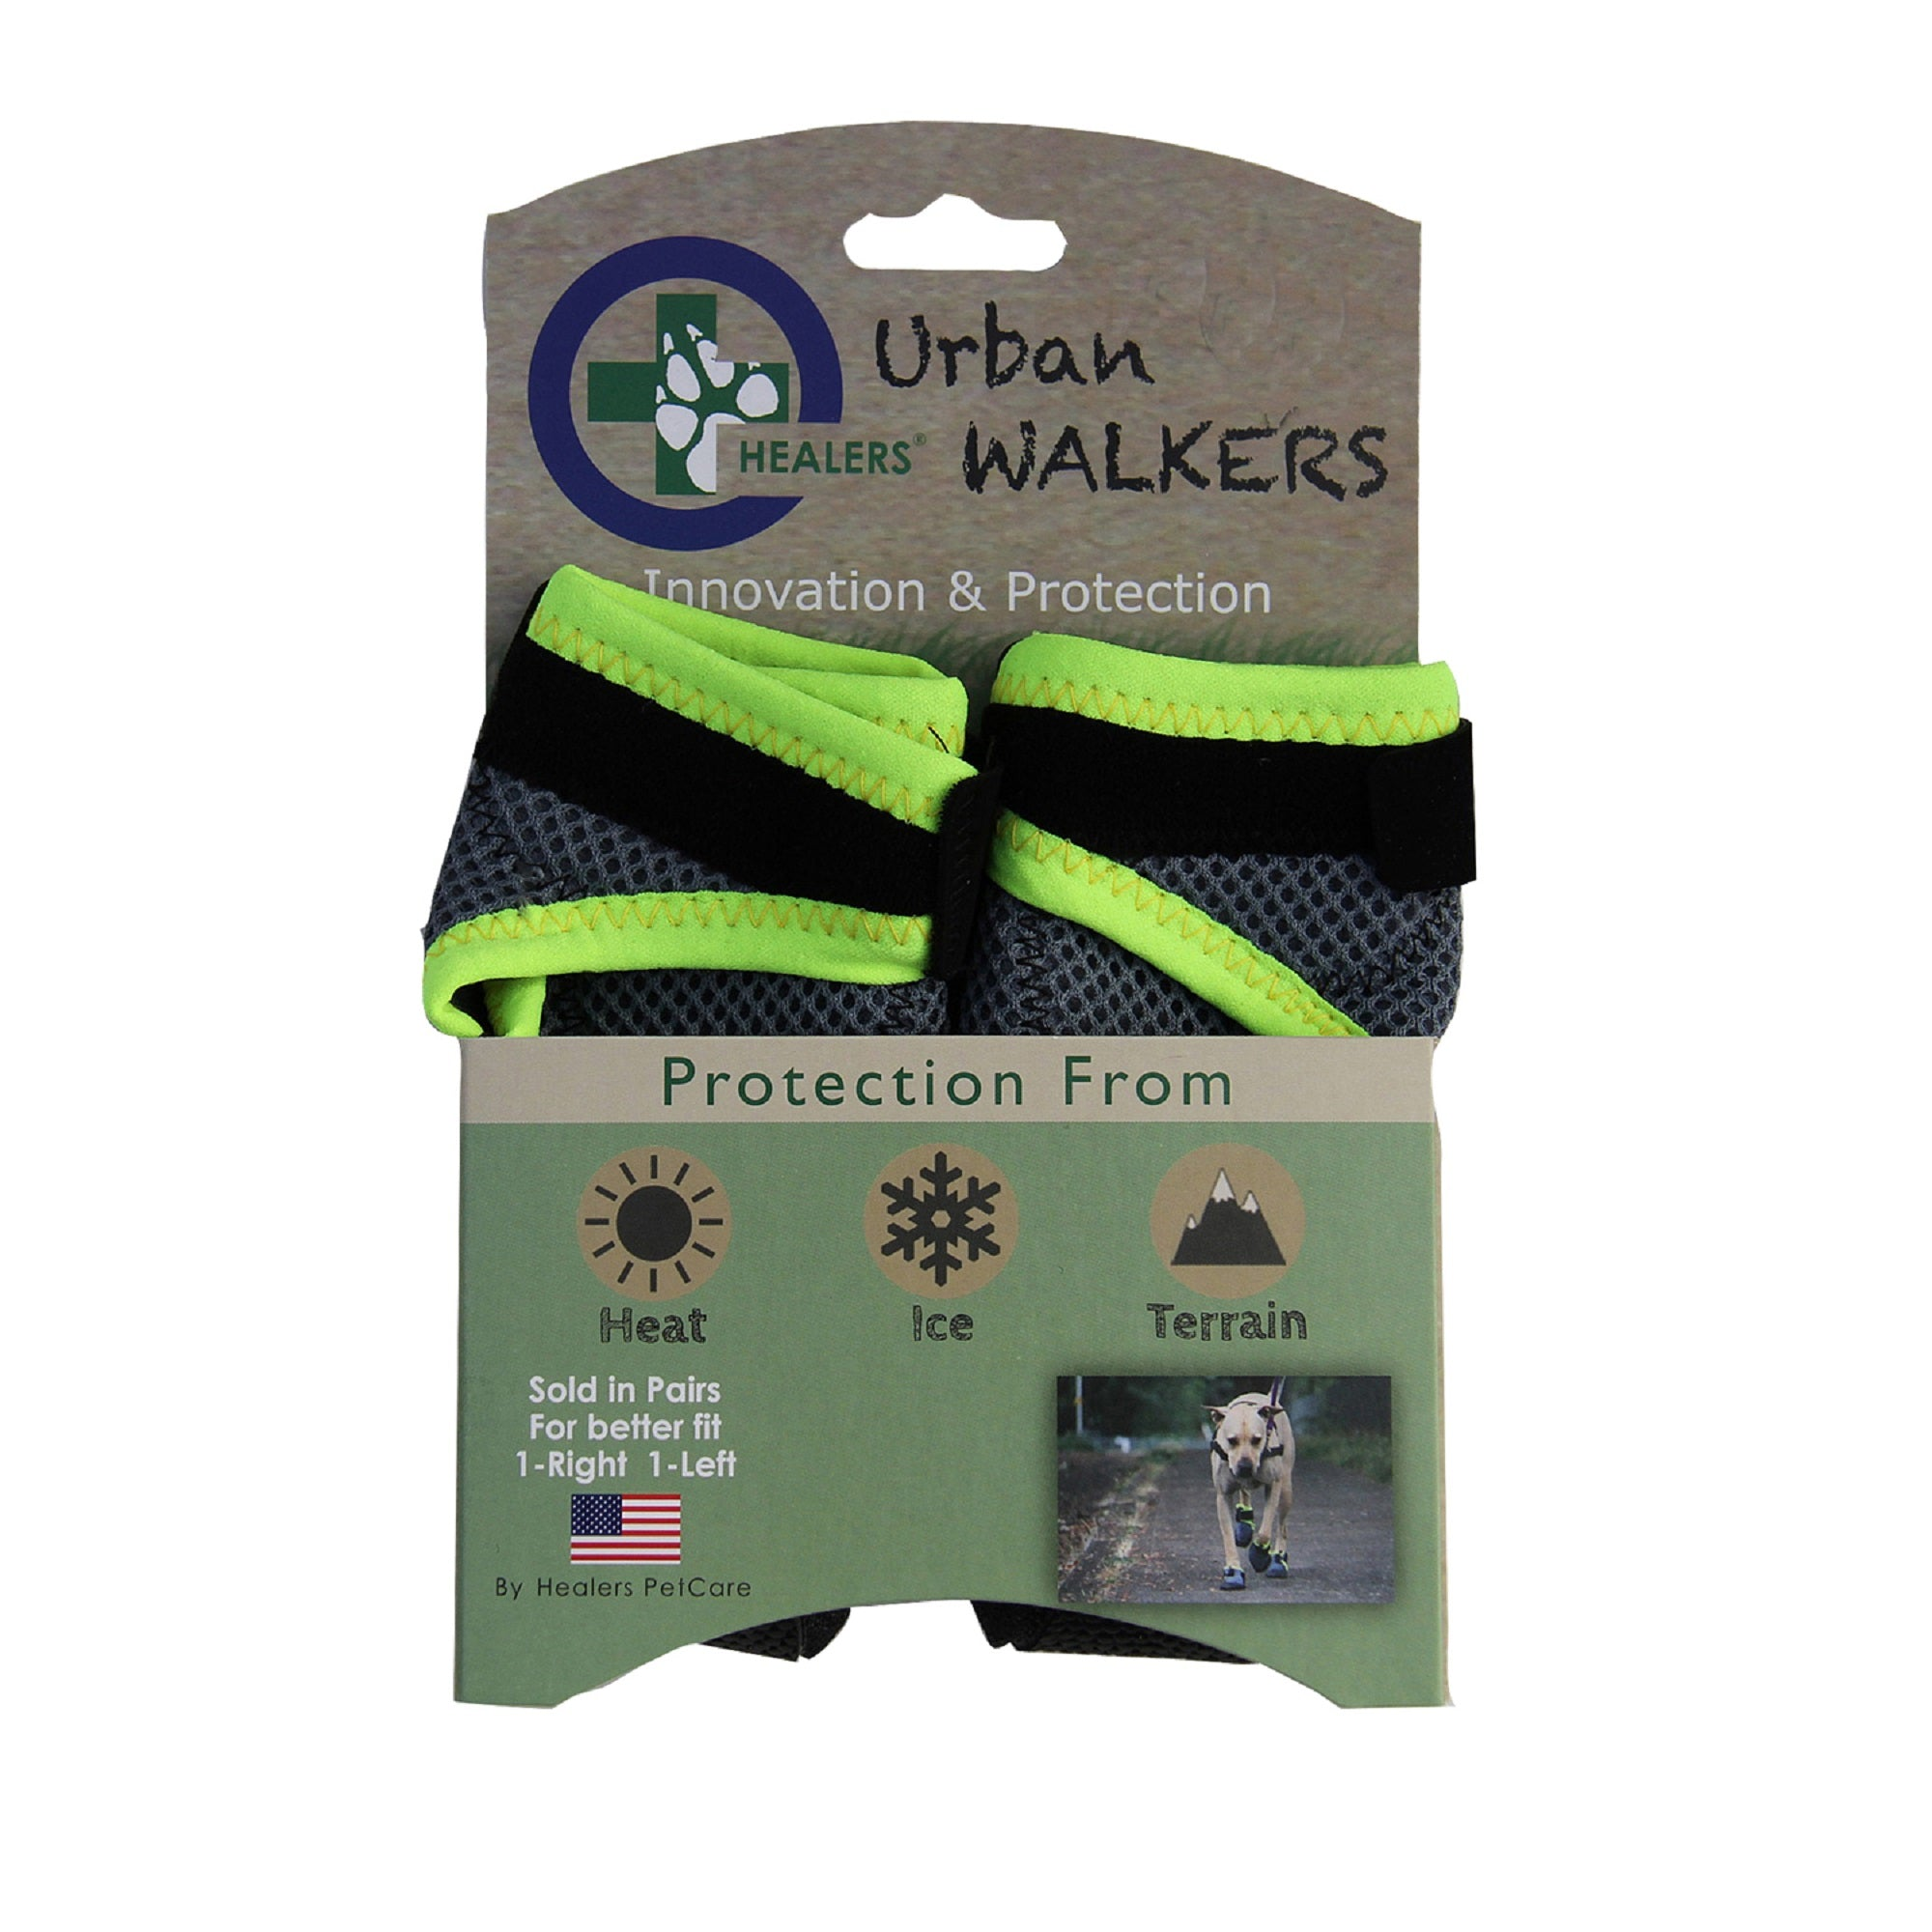 Urban Walkers Dog Booties (SOLD IN PAIRS) CLEARANCE BUY NOW WHILE SUPPLIES LAST